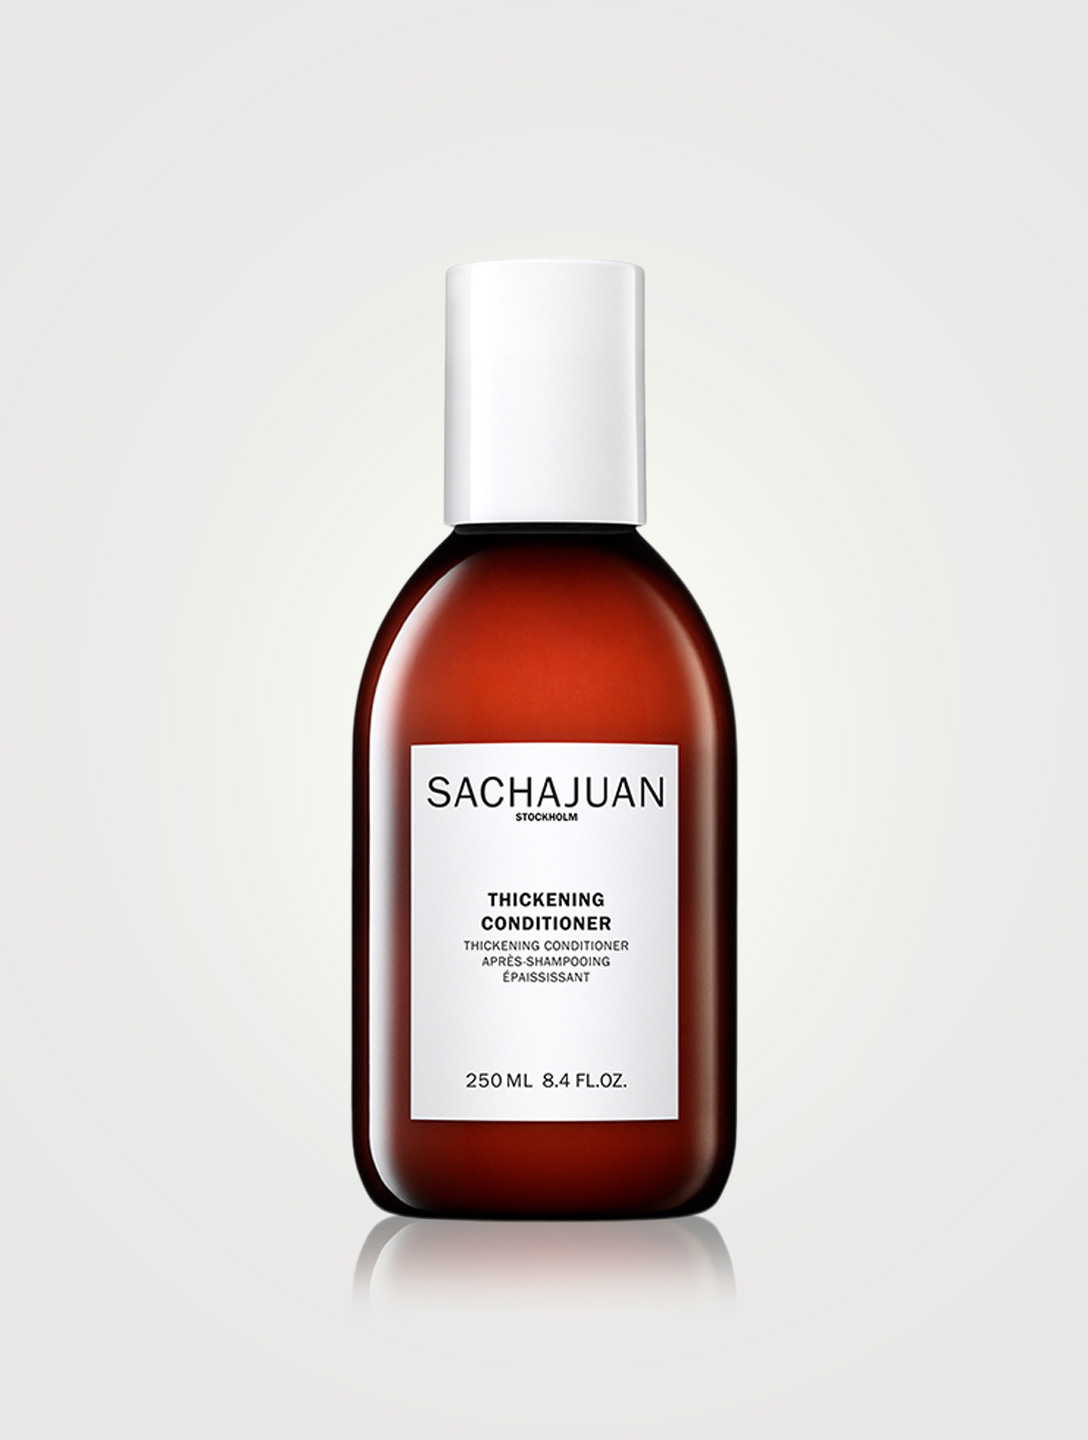 SACHAJUAN Thickening Conditioner Beauty